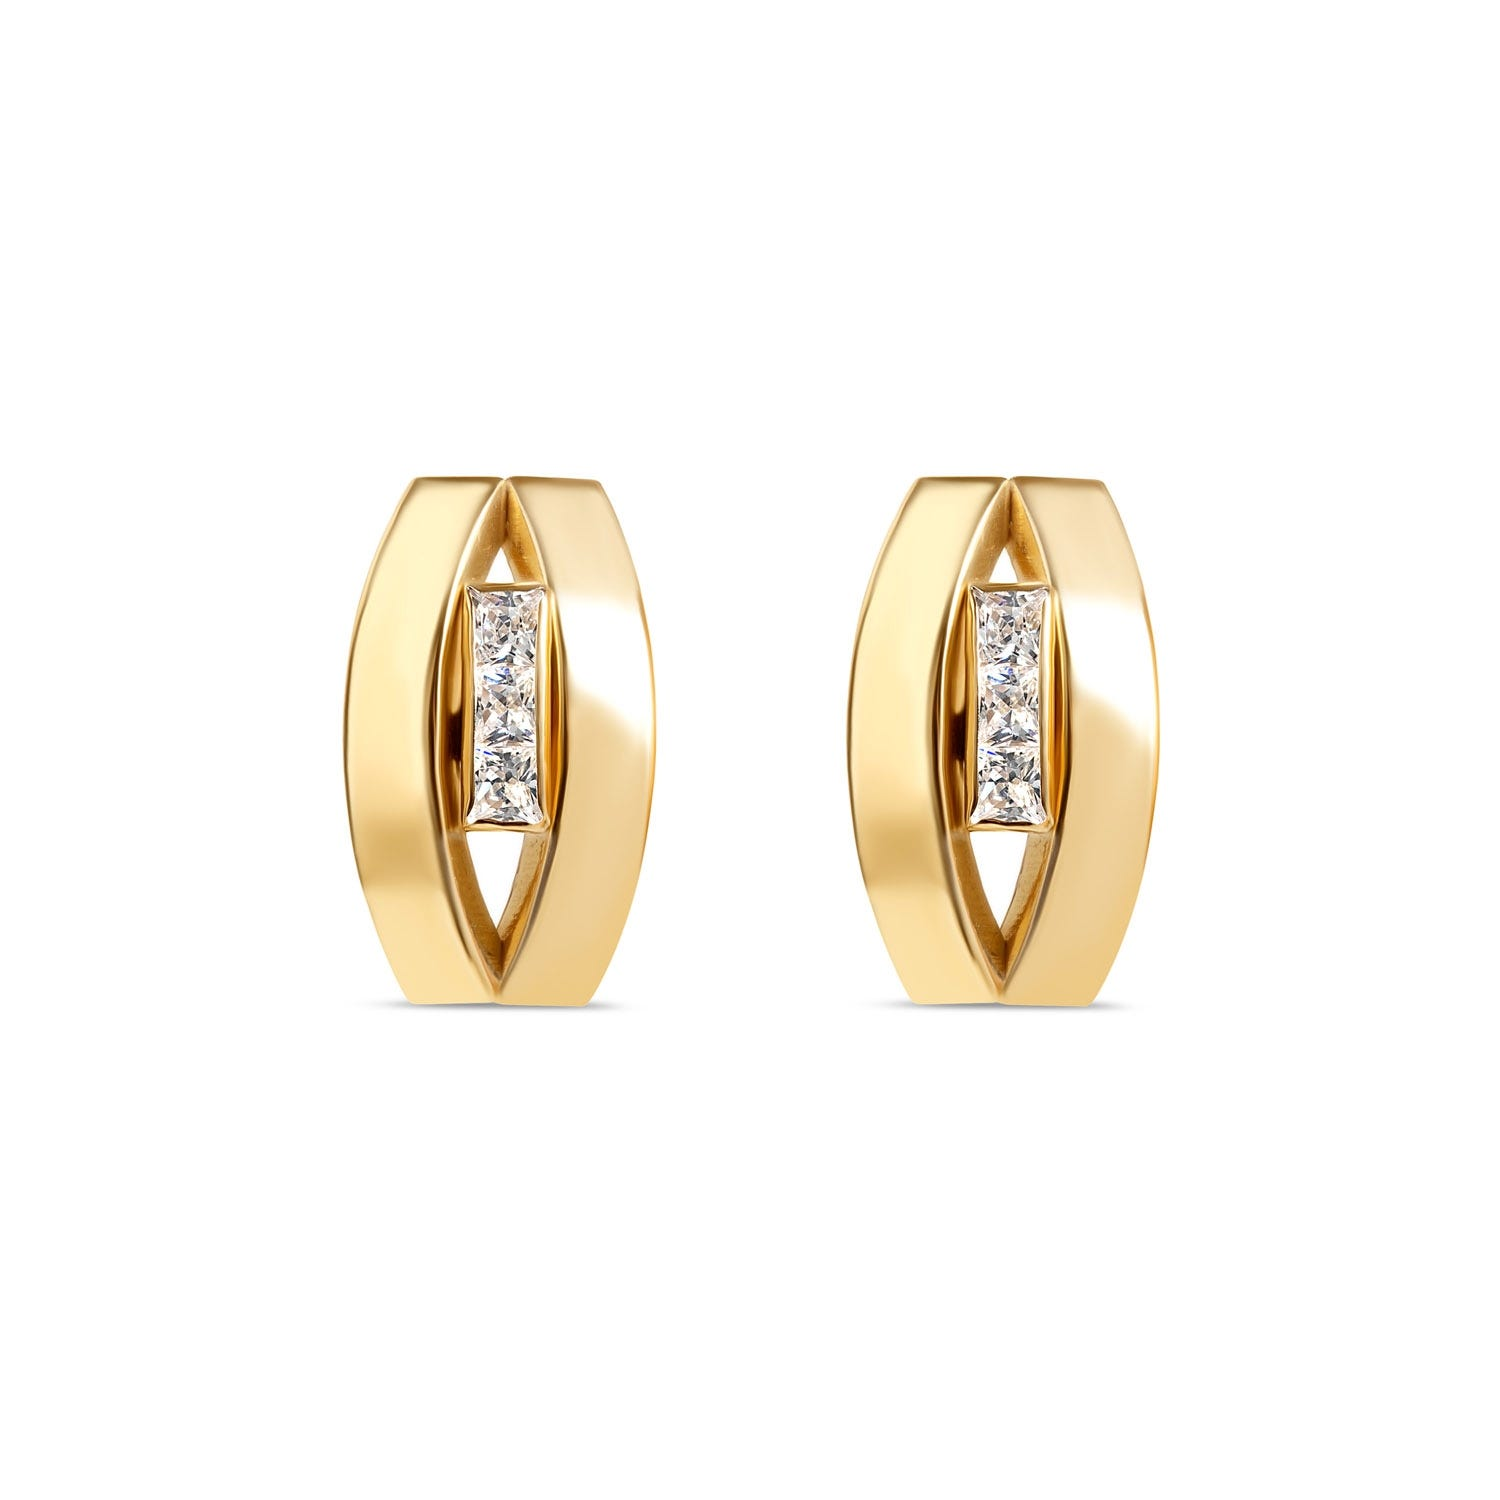 9ct Yellow Gold Three Stone Oval Stud Earrings